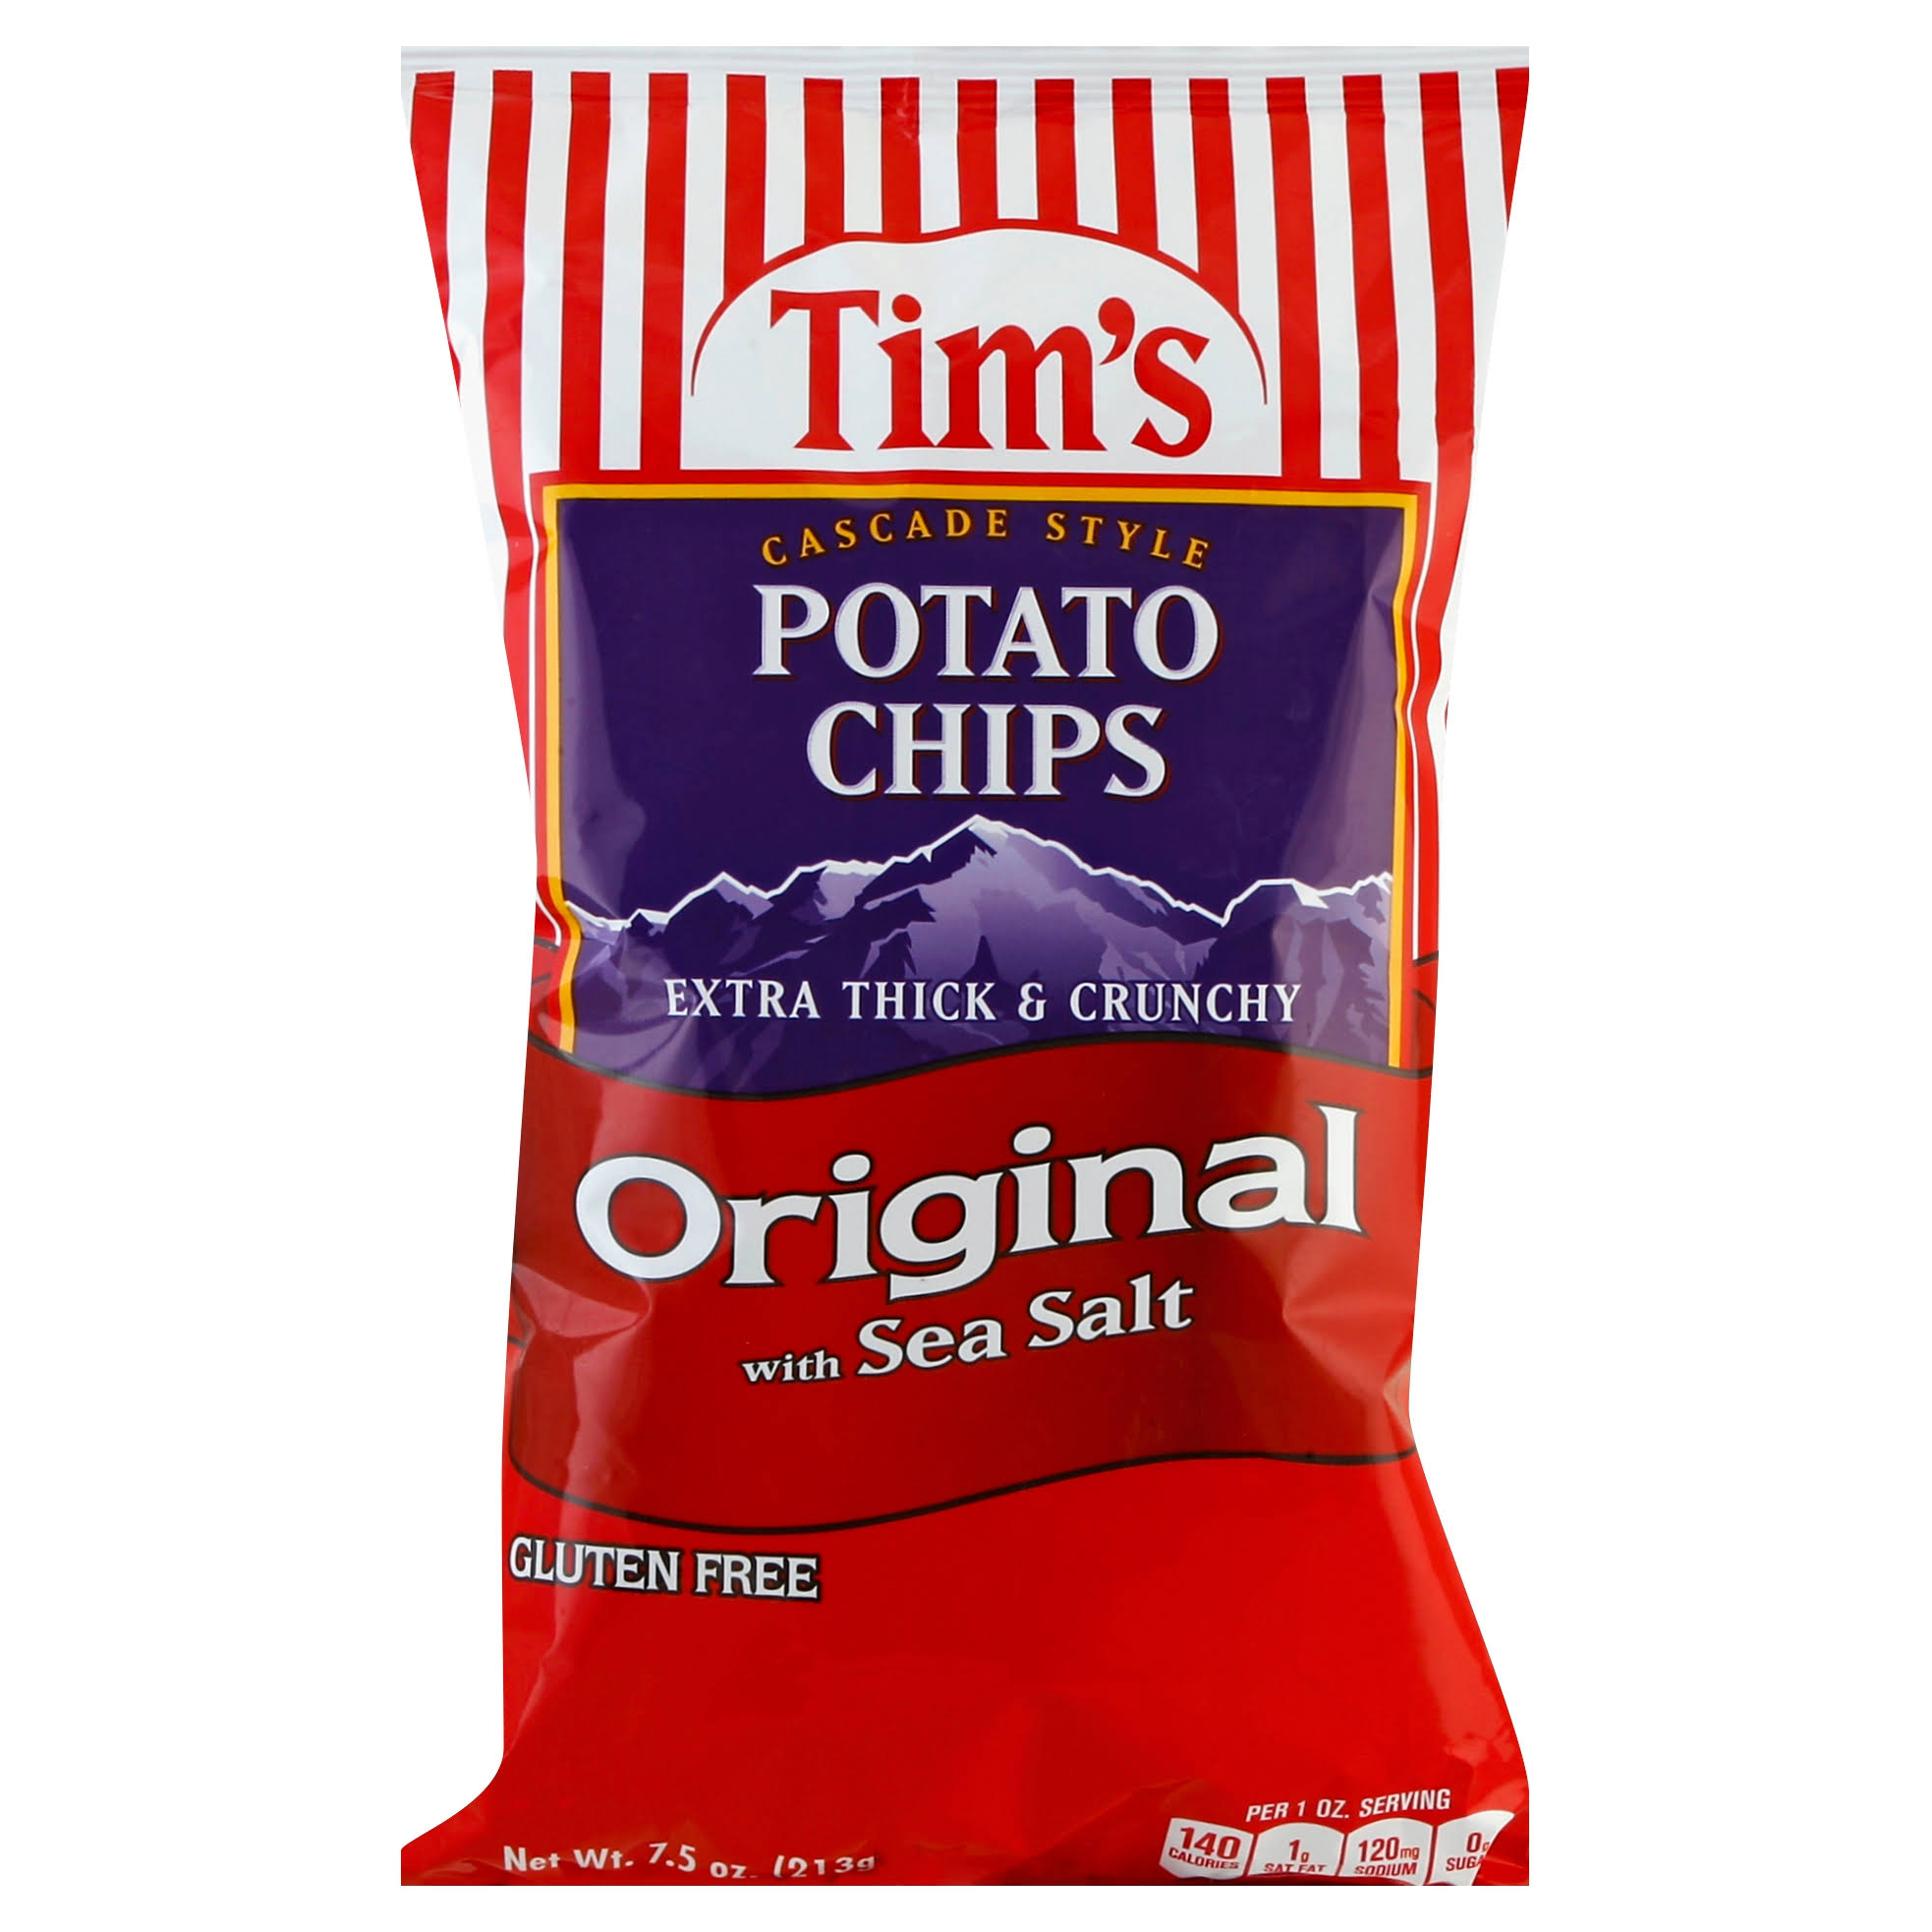 Tims Potato Chips, Original with Sea Salt, Cascade Style - 7.5 oz